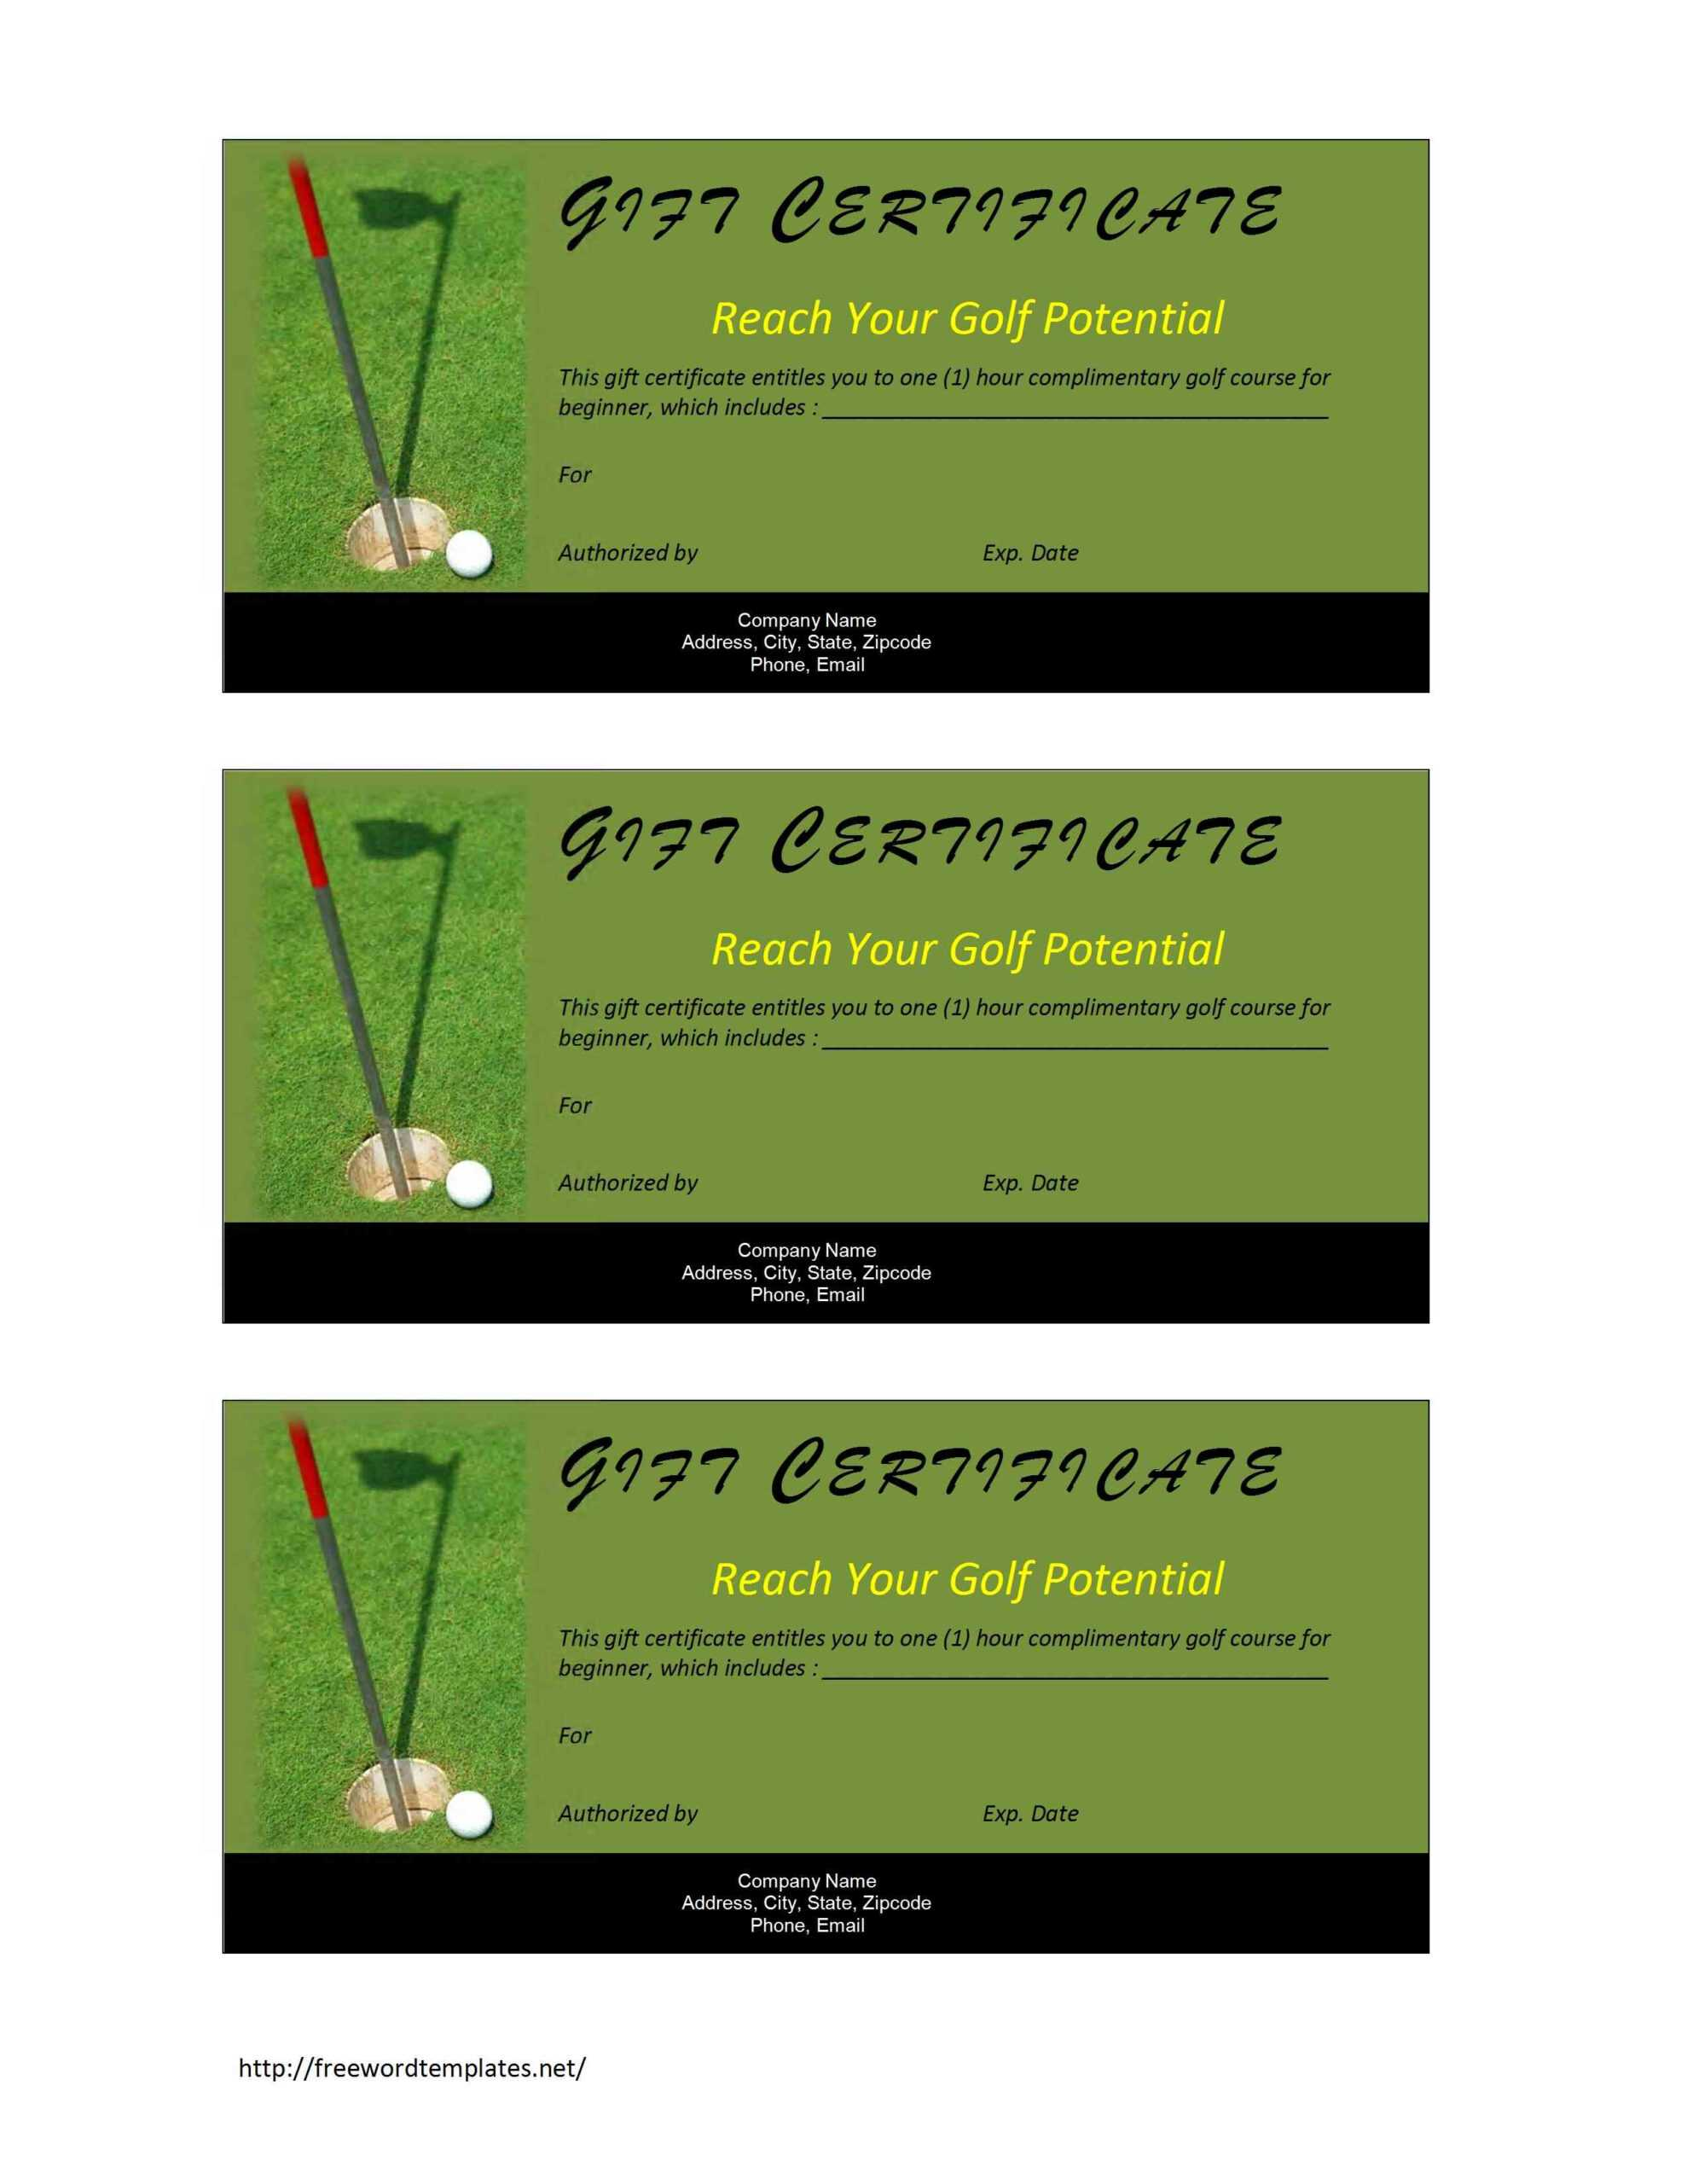 Golf Course Gift Certificate Template Free | Resume Writing In Golf Gift Certificate Template